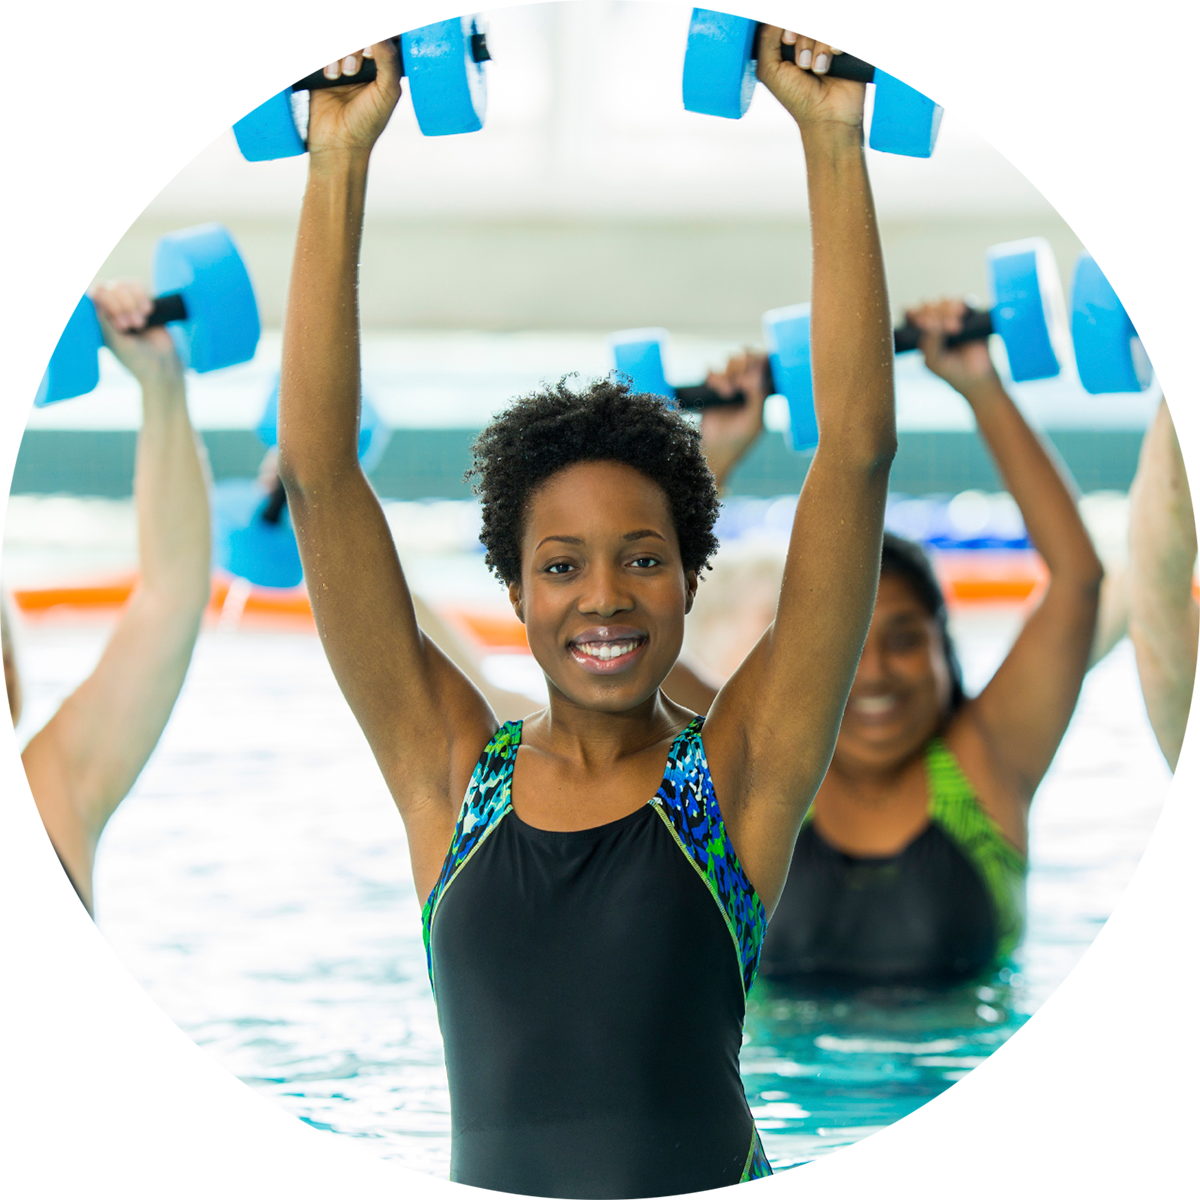 Water exercises, Pool workout, Swimming